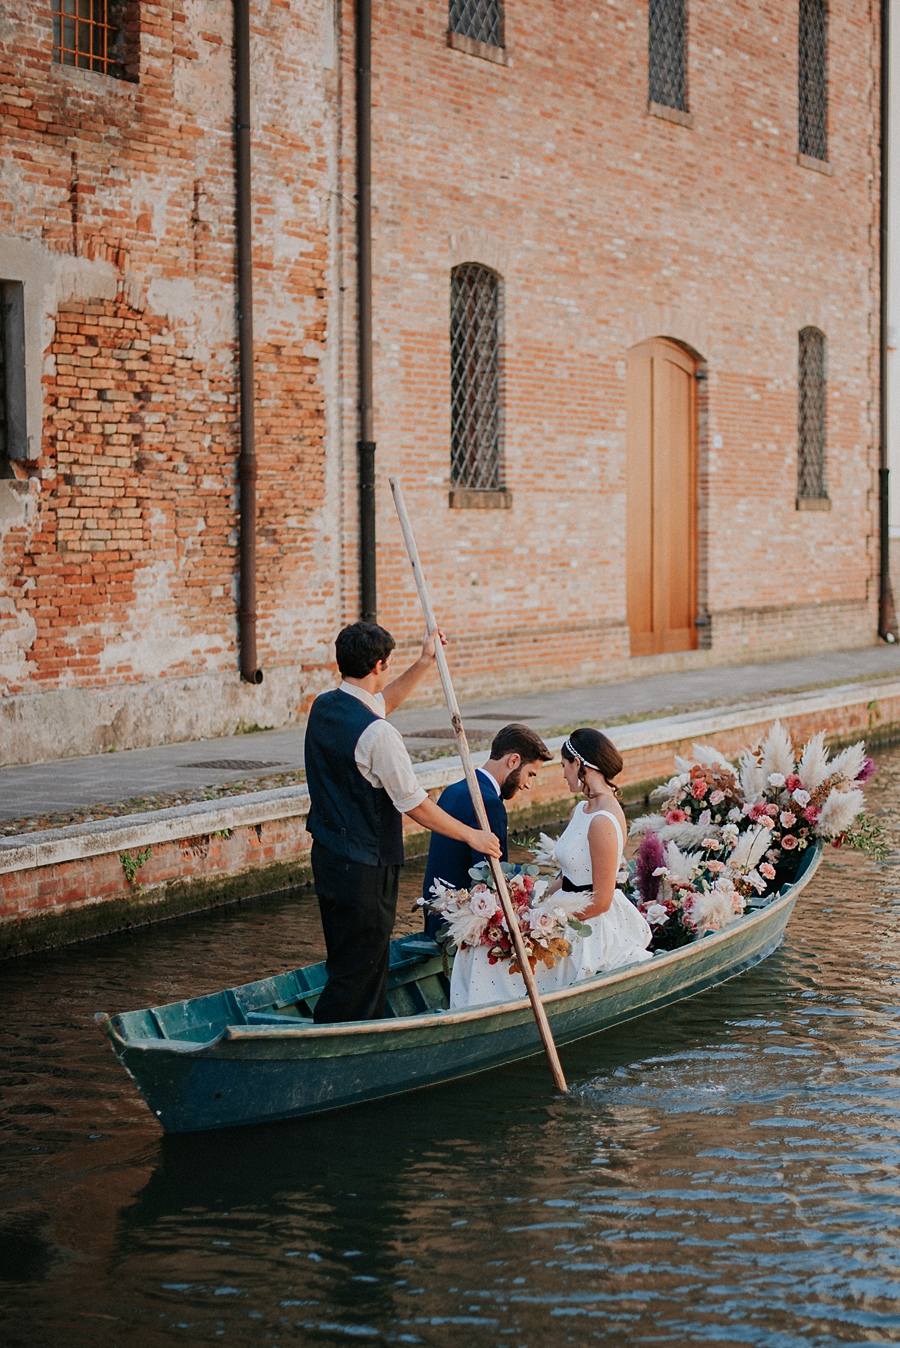 Italian Gondola Filled with Flowers